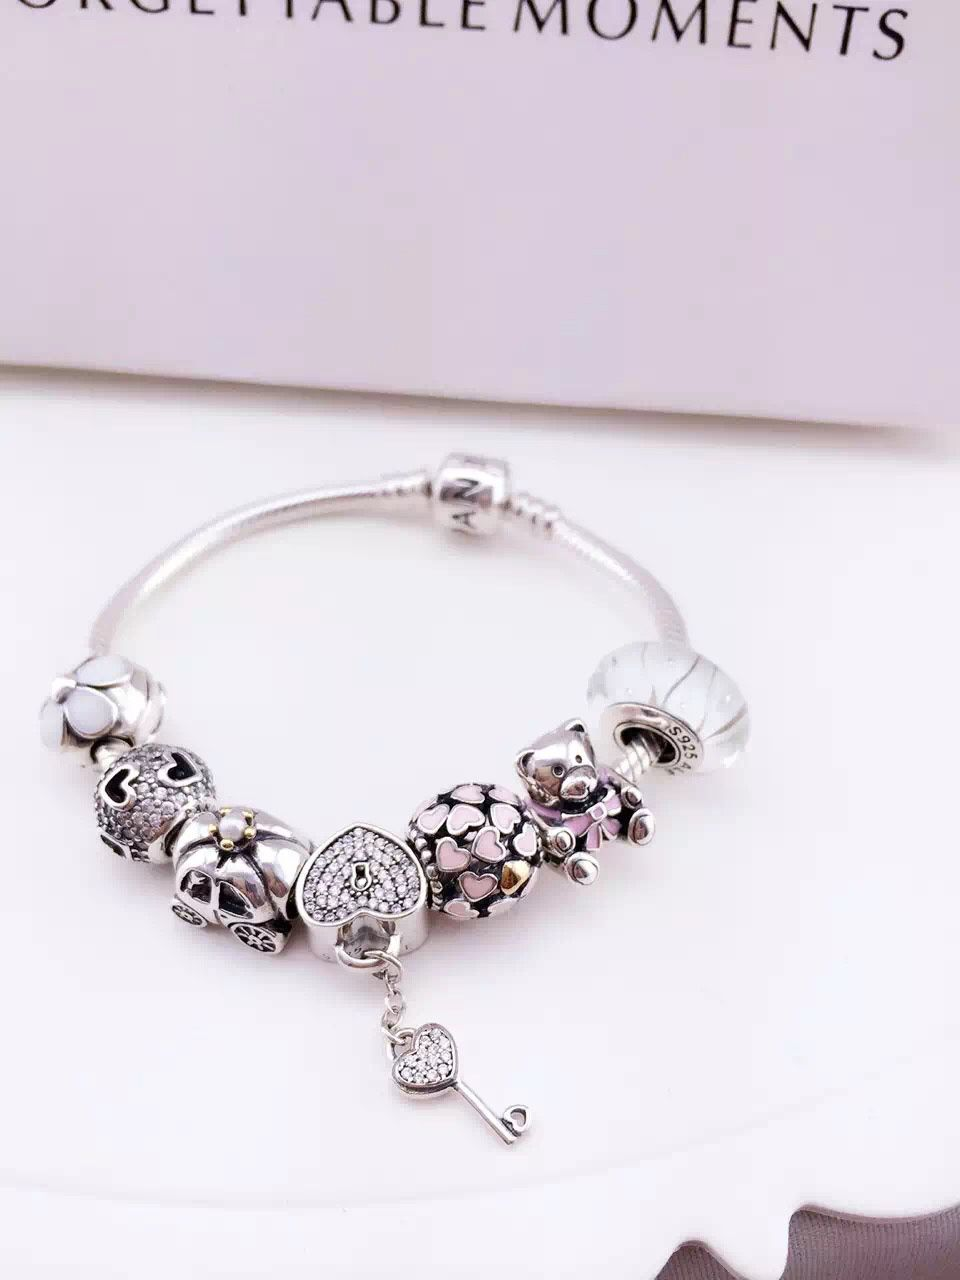 Friendship Bracelets Wedding Rings 50 Off 199 Pandora Charm Bracelet Hot